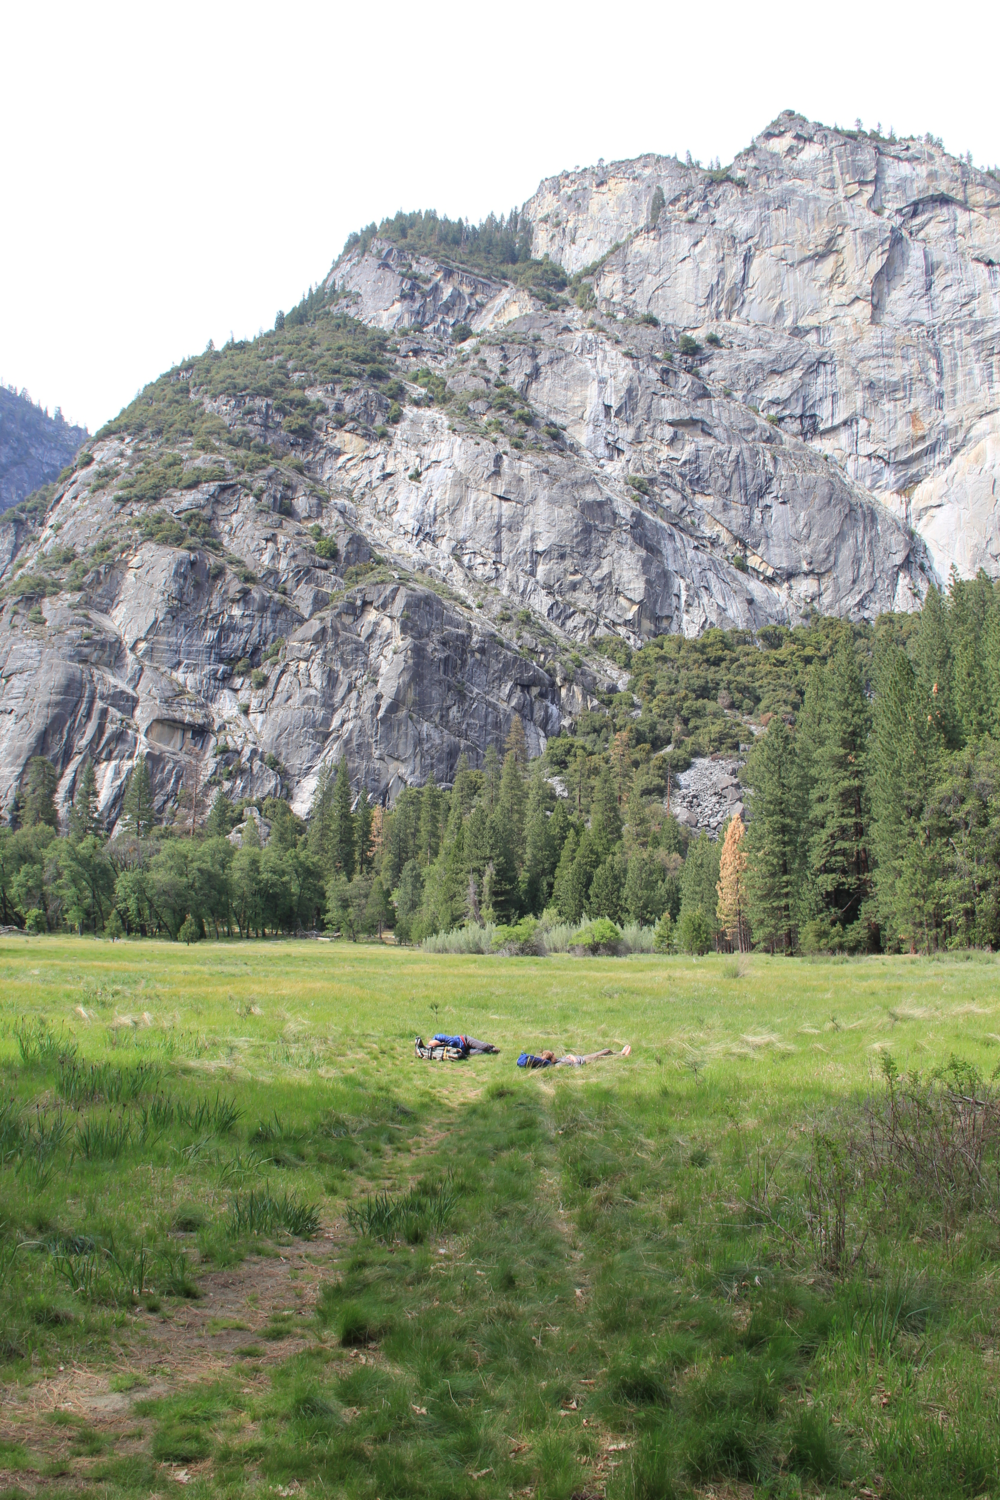 Hikers taking a quick nap in the meadow